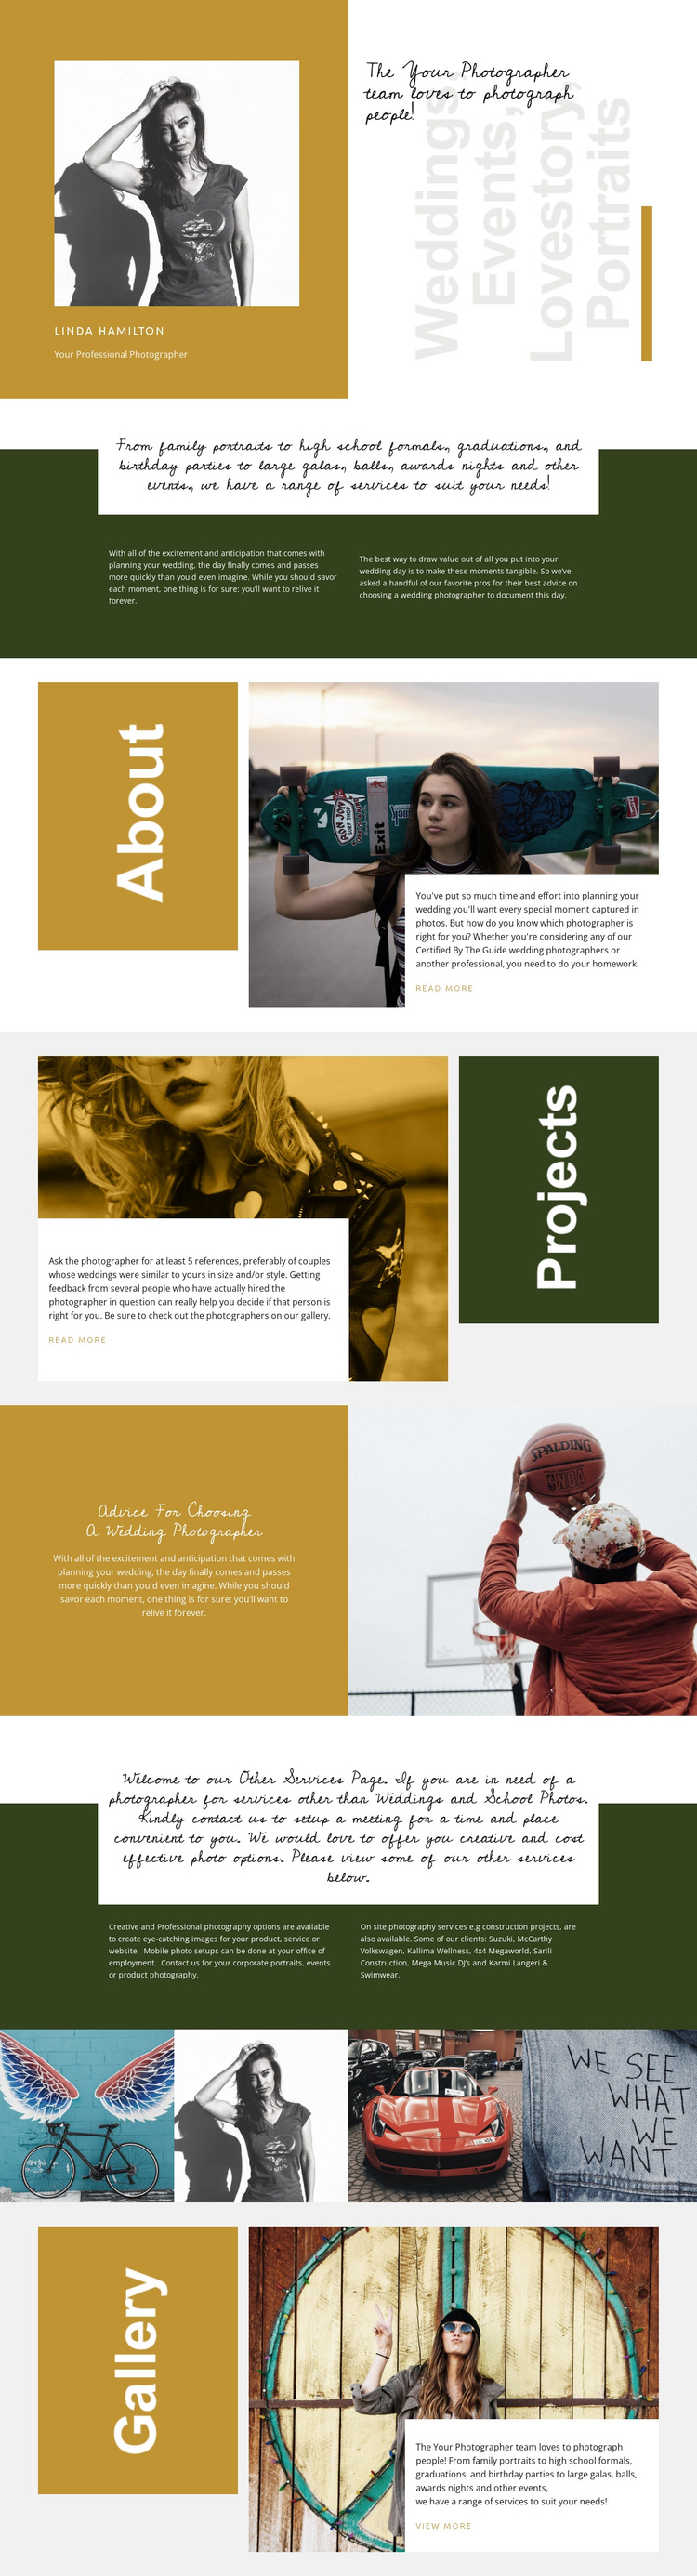 Fashion photography courses Website Builder Software